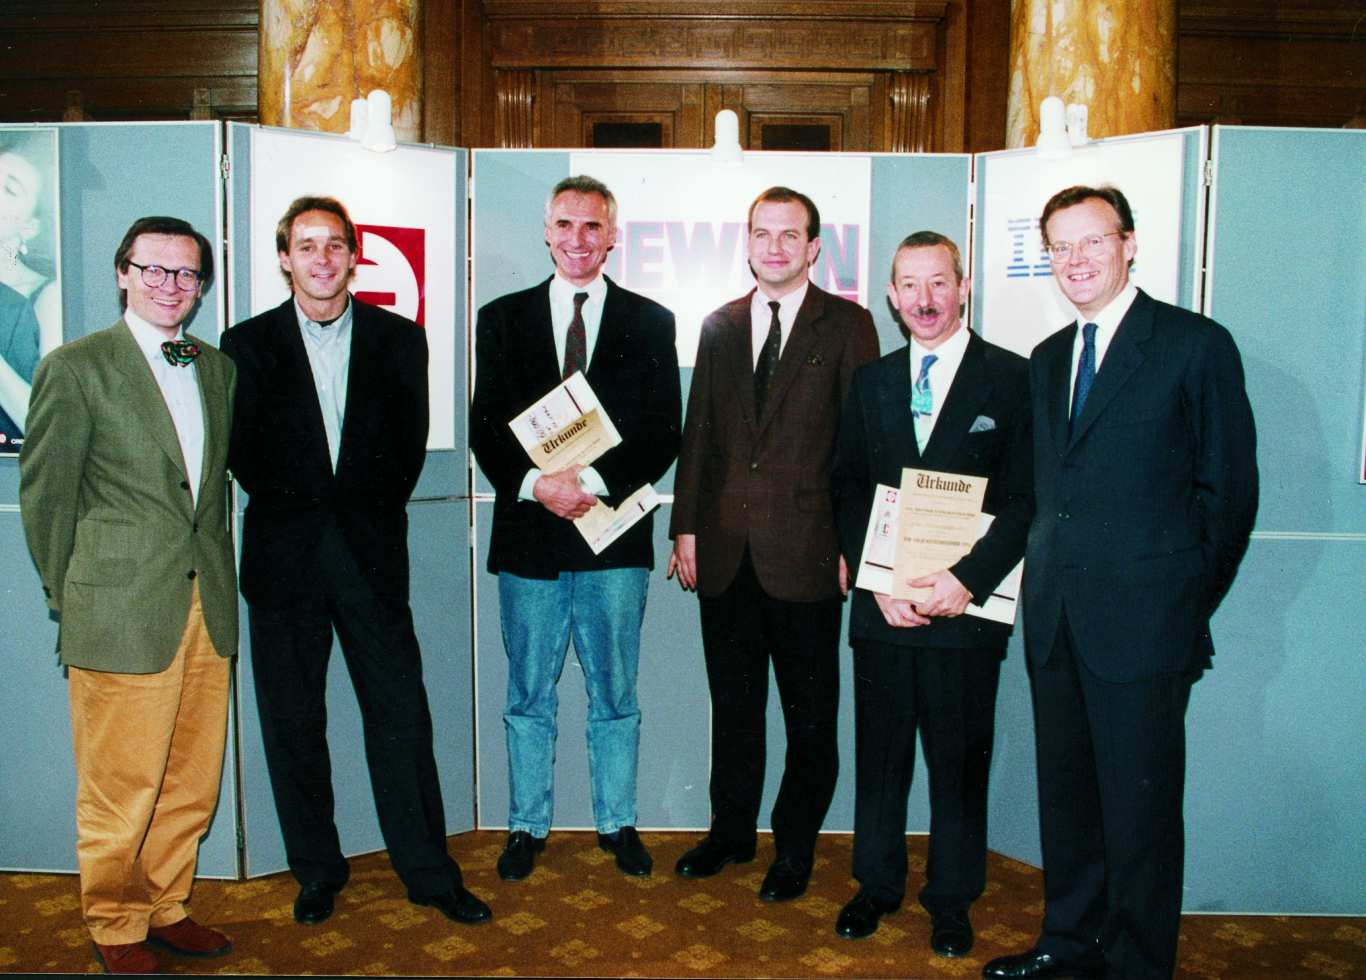 Did you know that GENESiS / UNiQUARE founder Dietmar Schwarzenbacher overtook Didi Mateschitz (Red Bull) in 1991 as an Austrian young entrepreneur of the year?